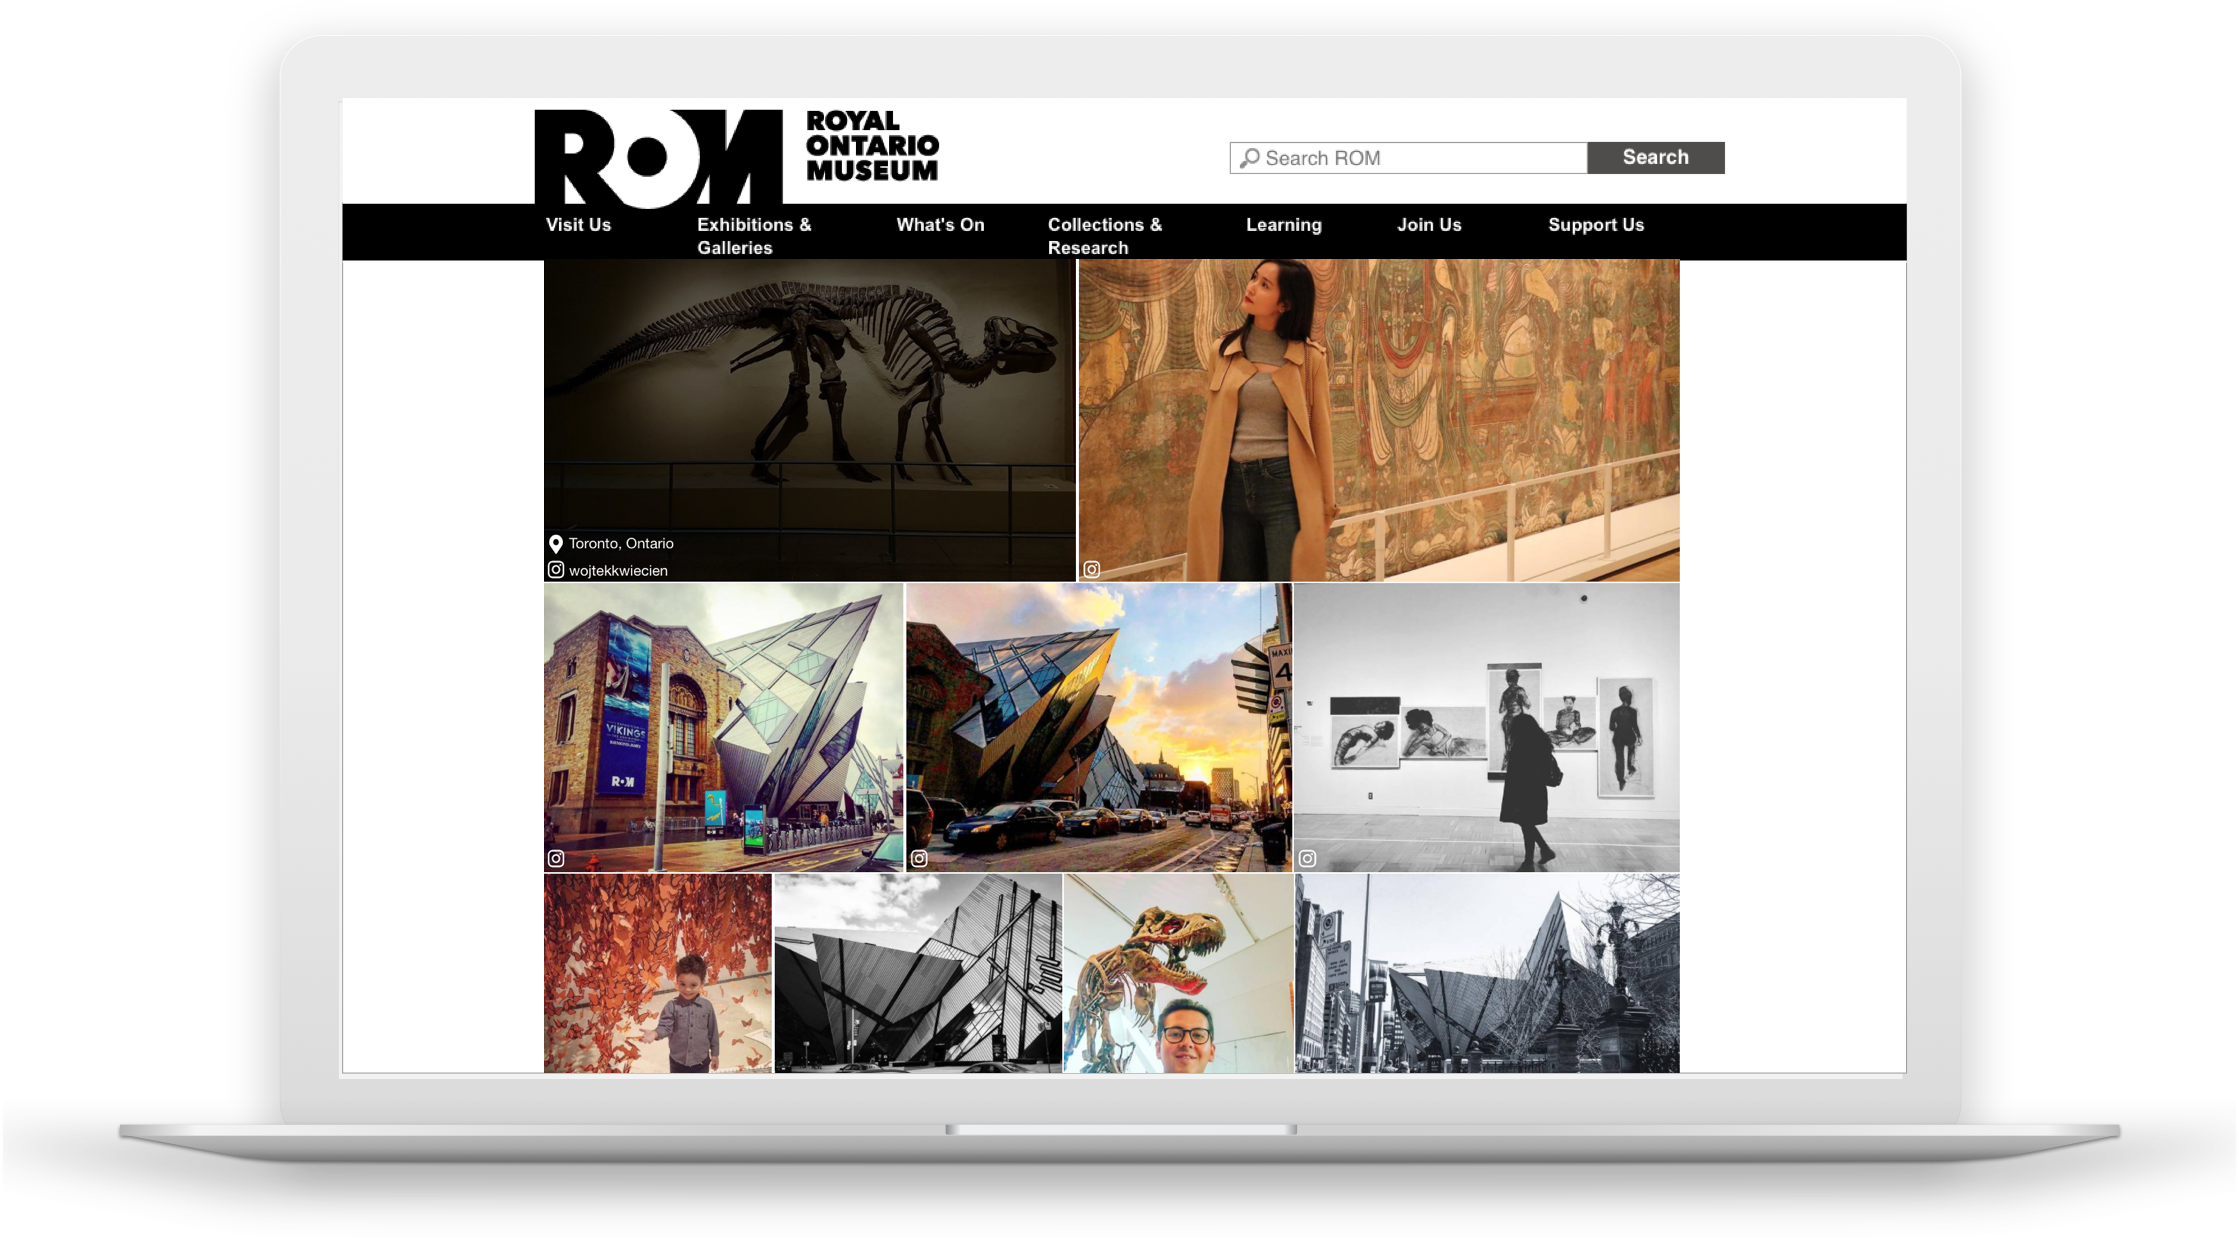 Screenshot of CrowdRiff gallery on ROM website